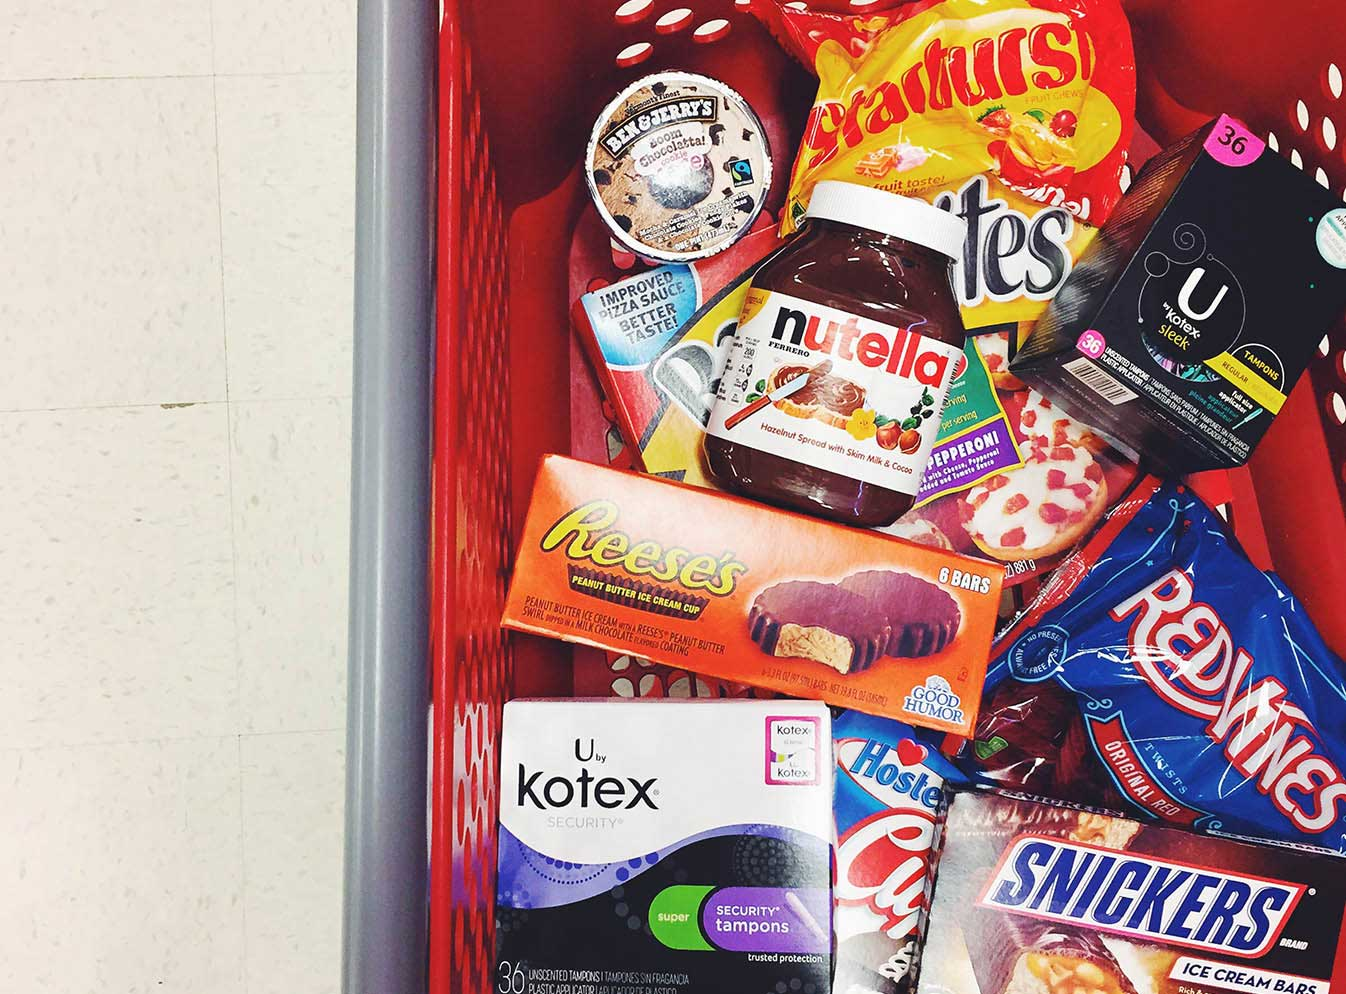 Shopping cart full of chocolate, candy, snacks, and U by Kotex